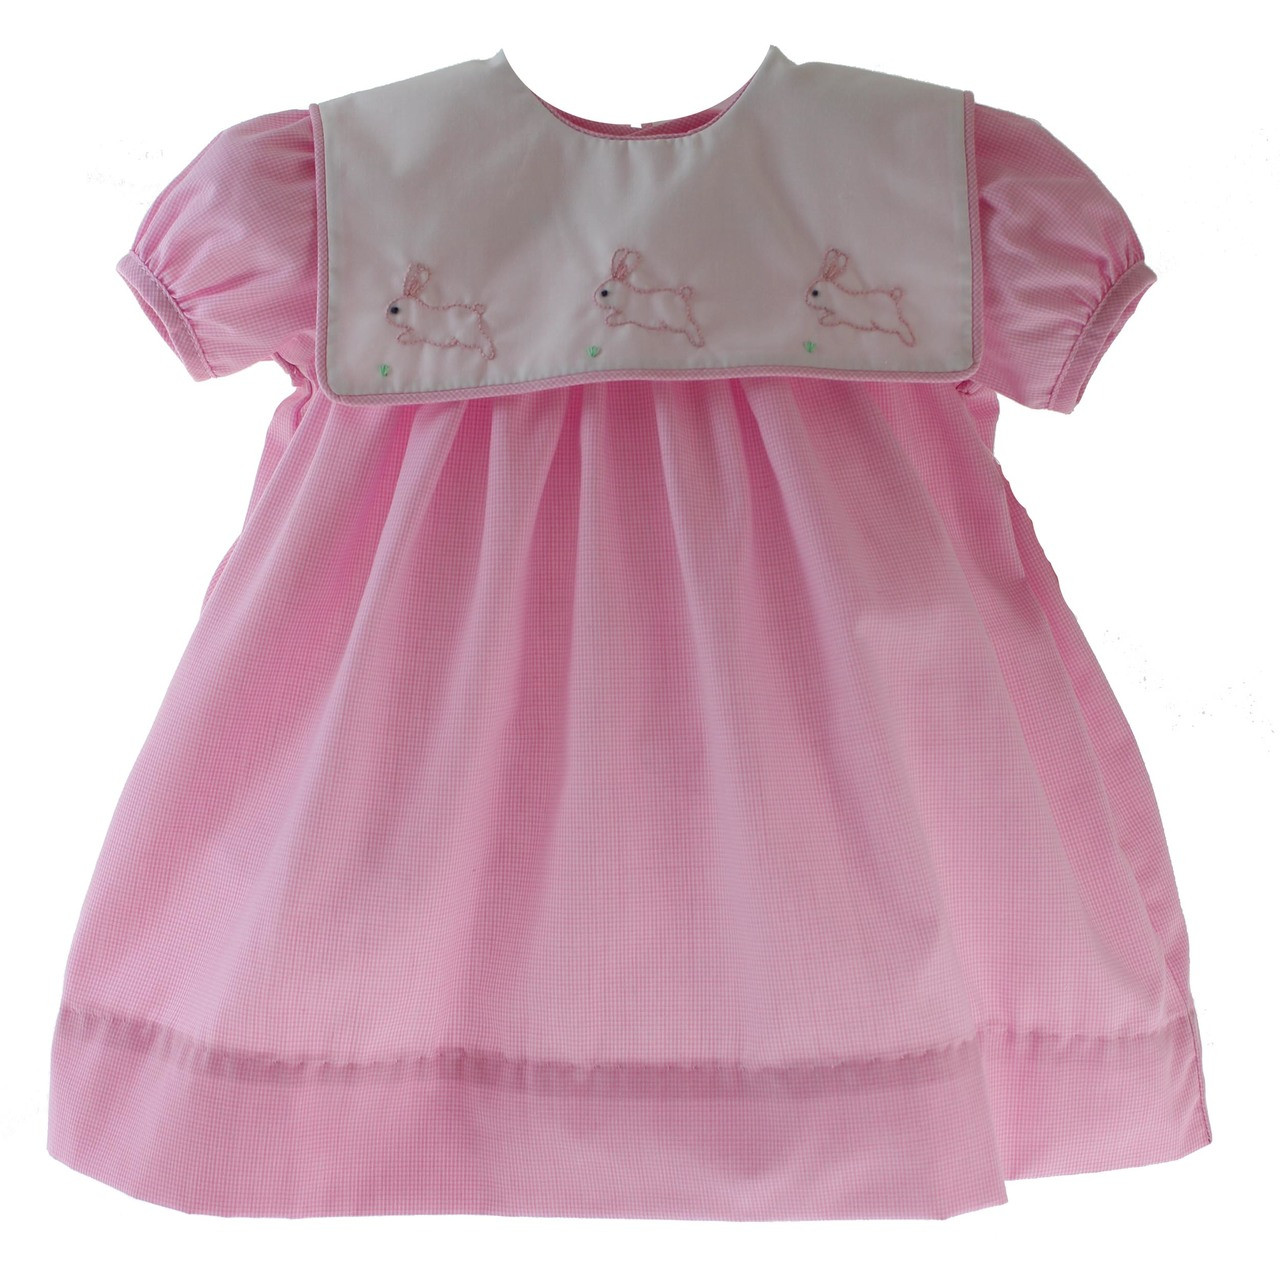 Baby Girls Pink Easter Dress Bunny Rabbit Embroidery - Hiccups ... ee7f865d9